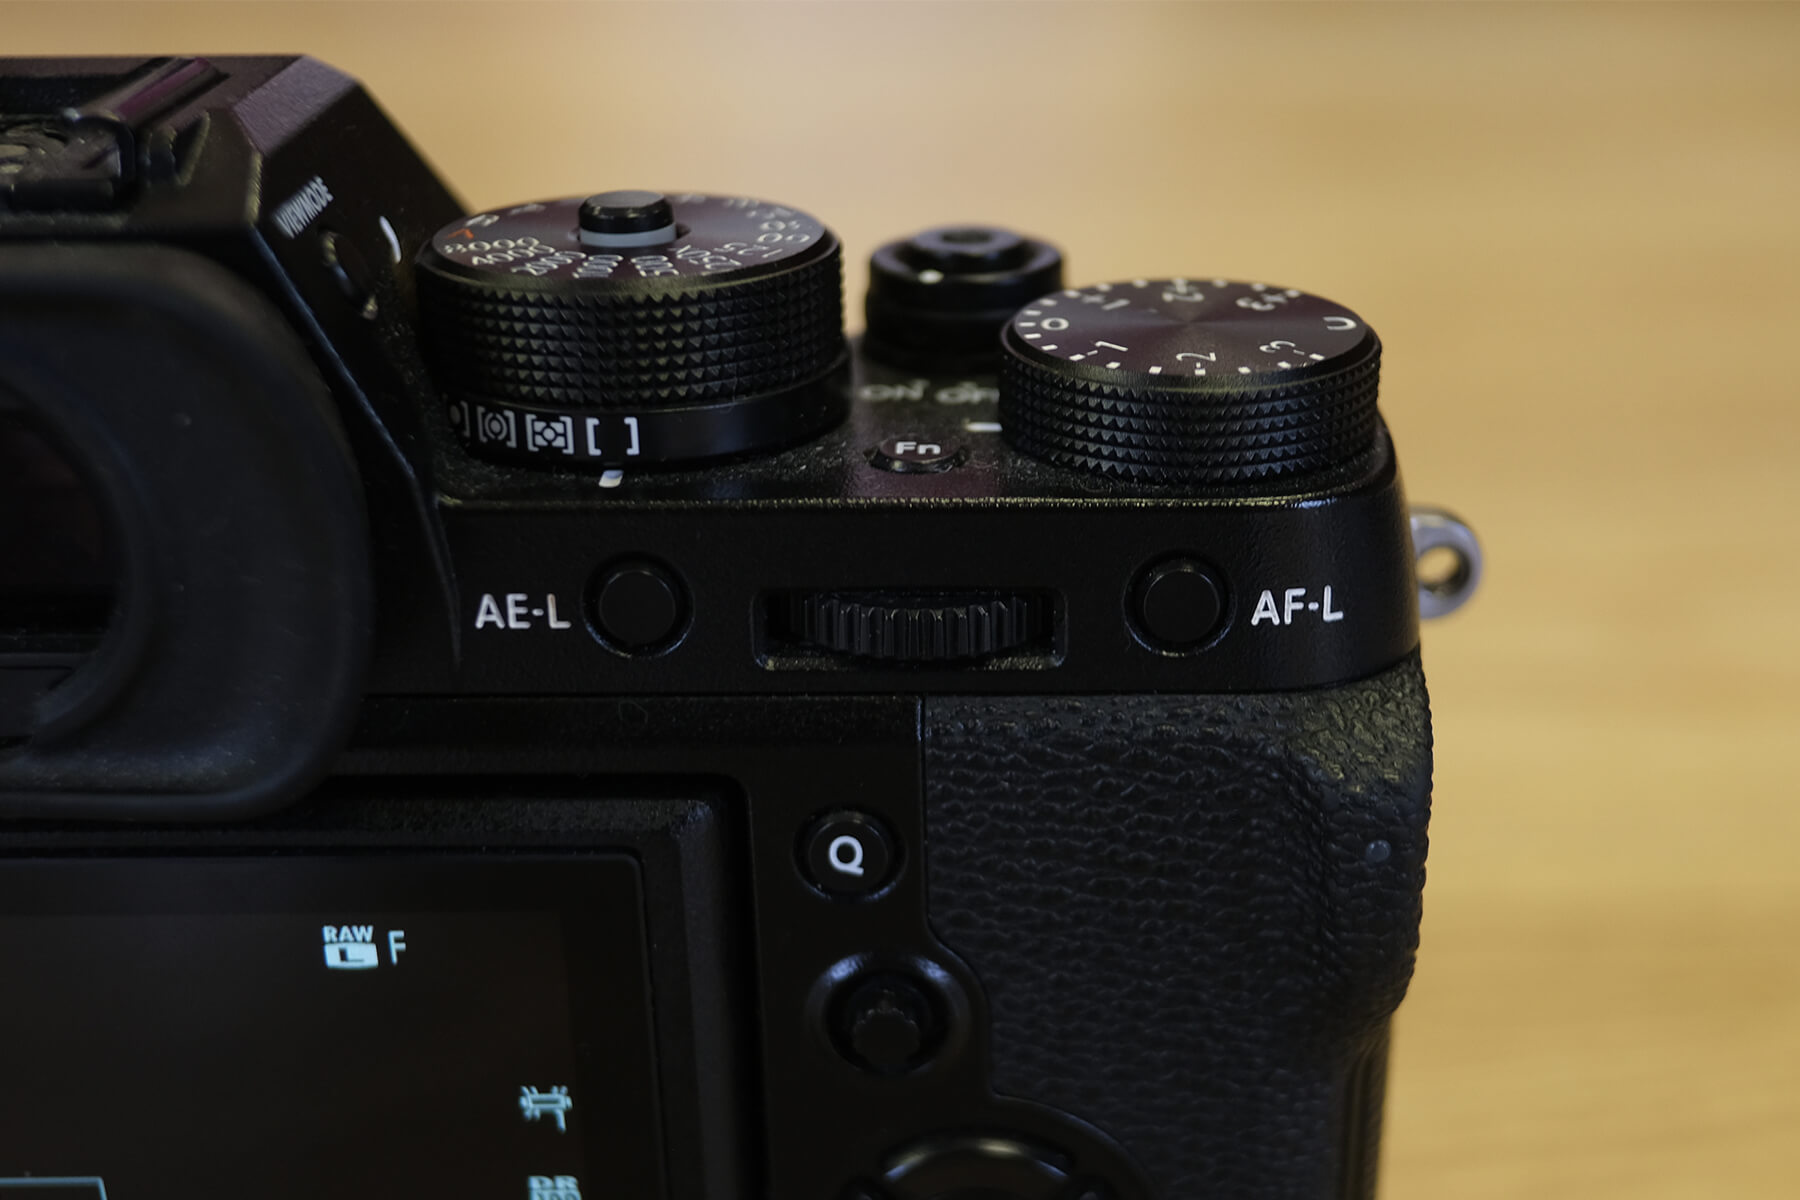 Camera AE-L and AF-L buttons